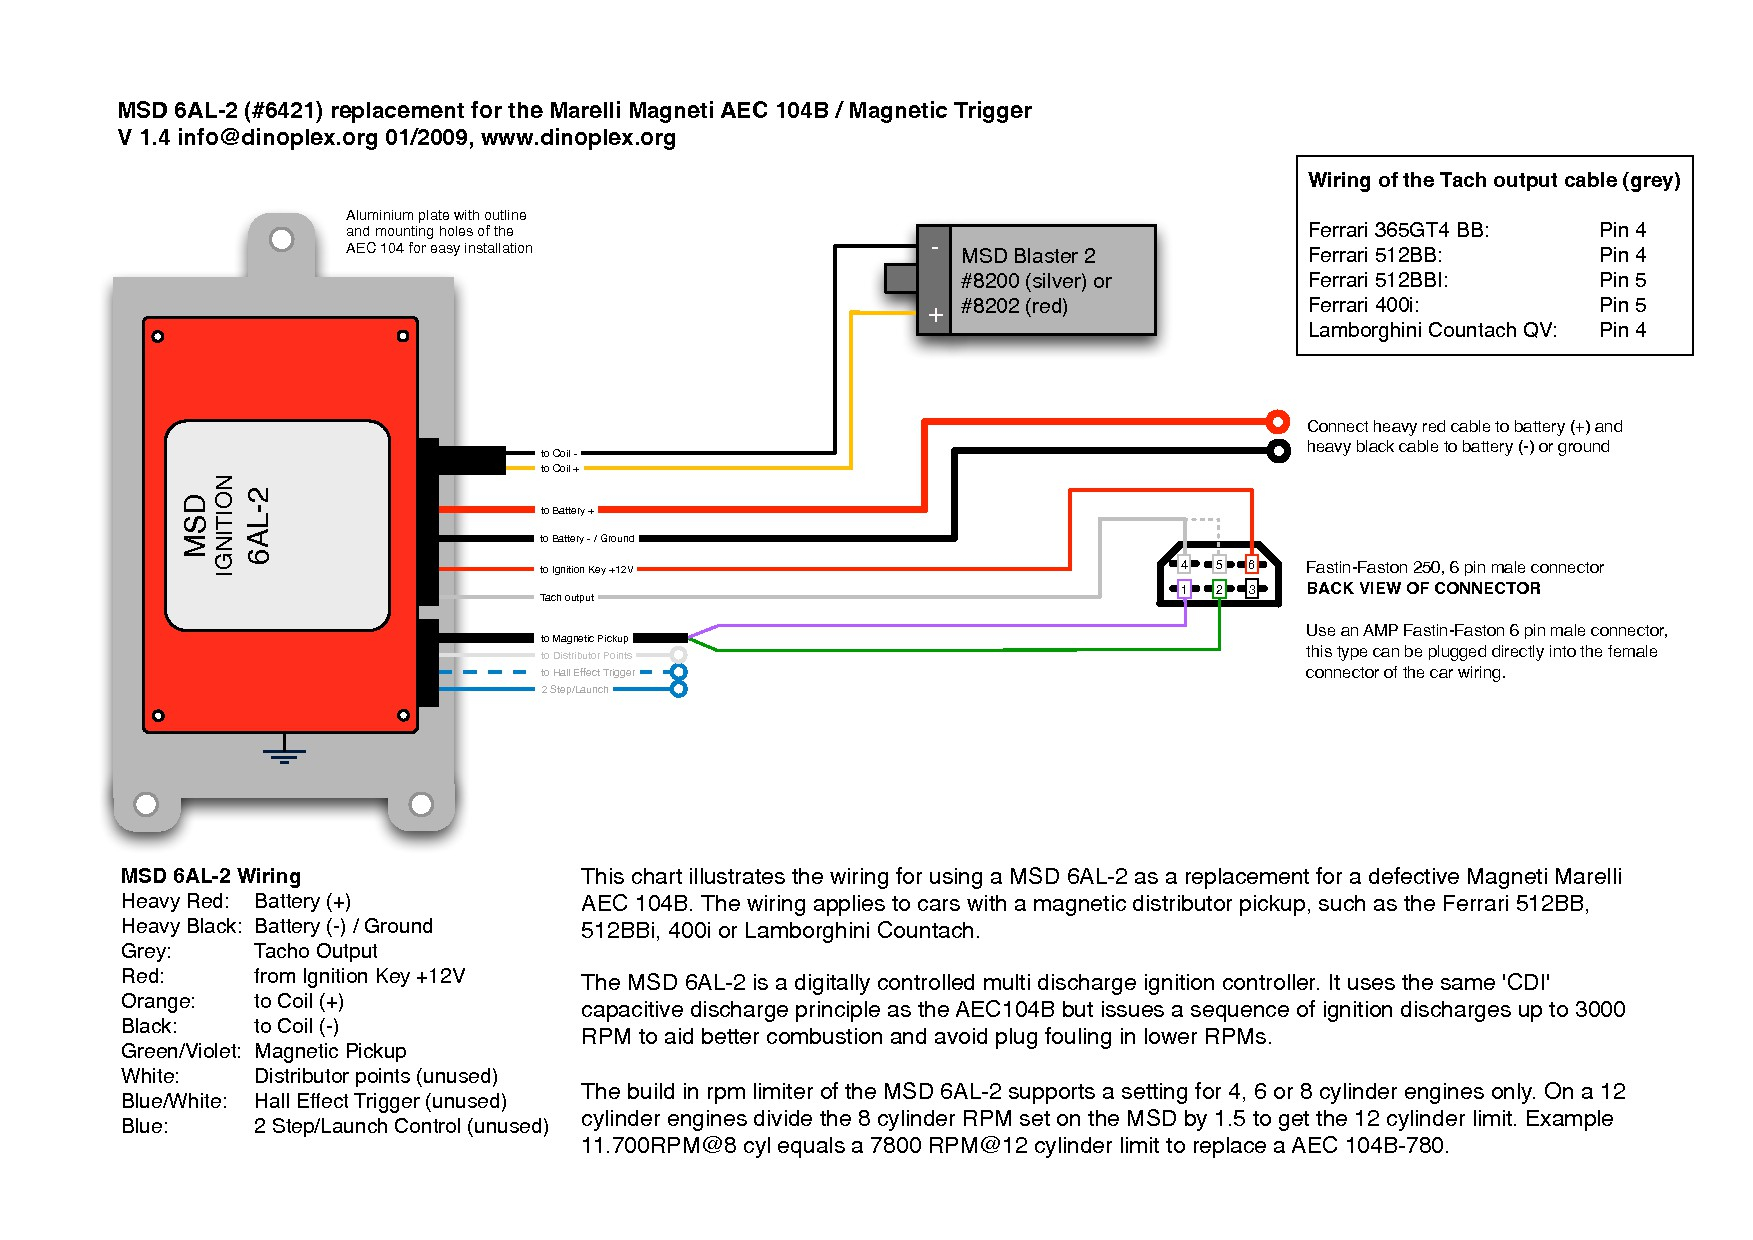 Tfi Wiring Diagram Library For 1988 Ford Festiva Chevy Ignition Msd 6al 2 Trusted Diagrams Rh Wiringhubme Today